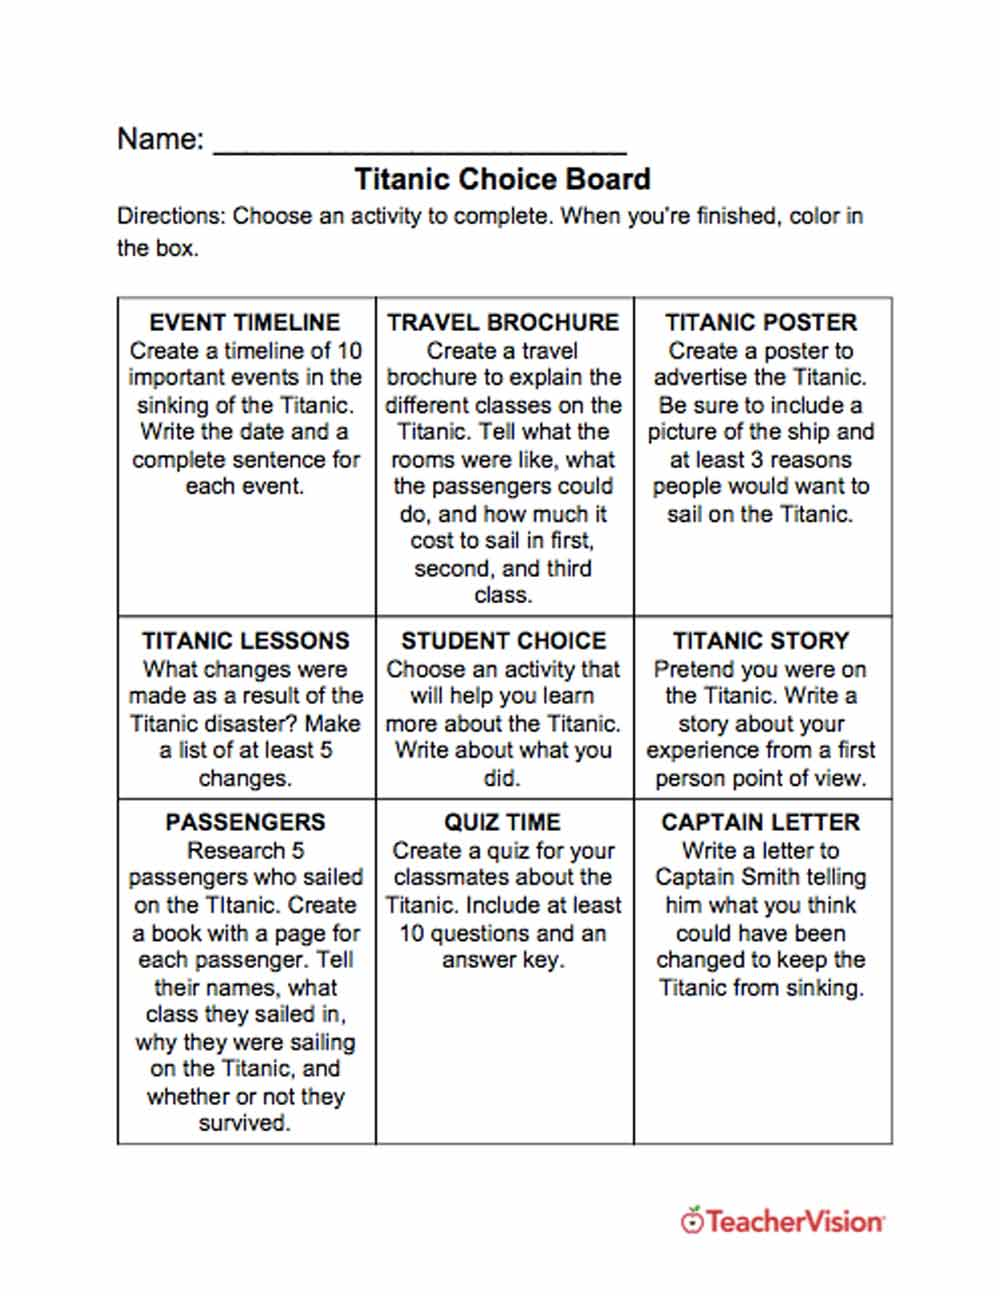 Titanic Choice Board